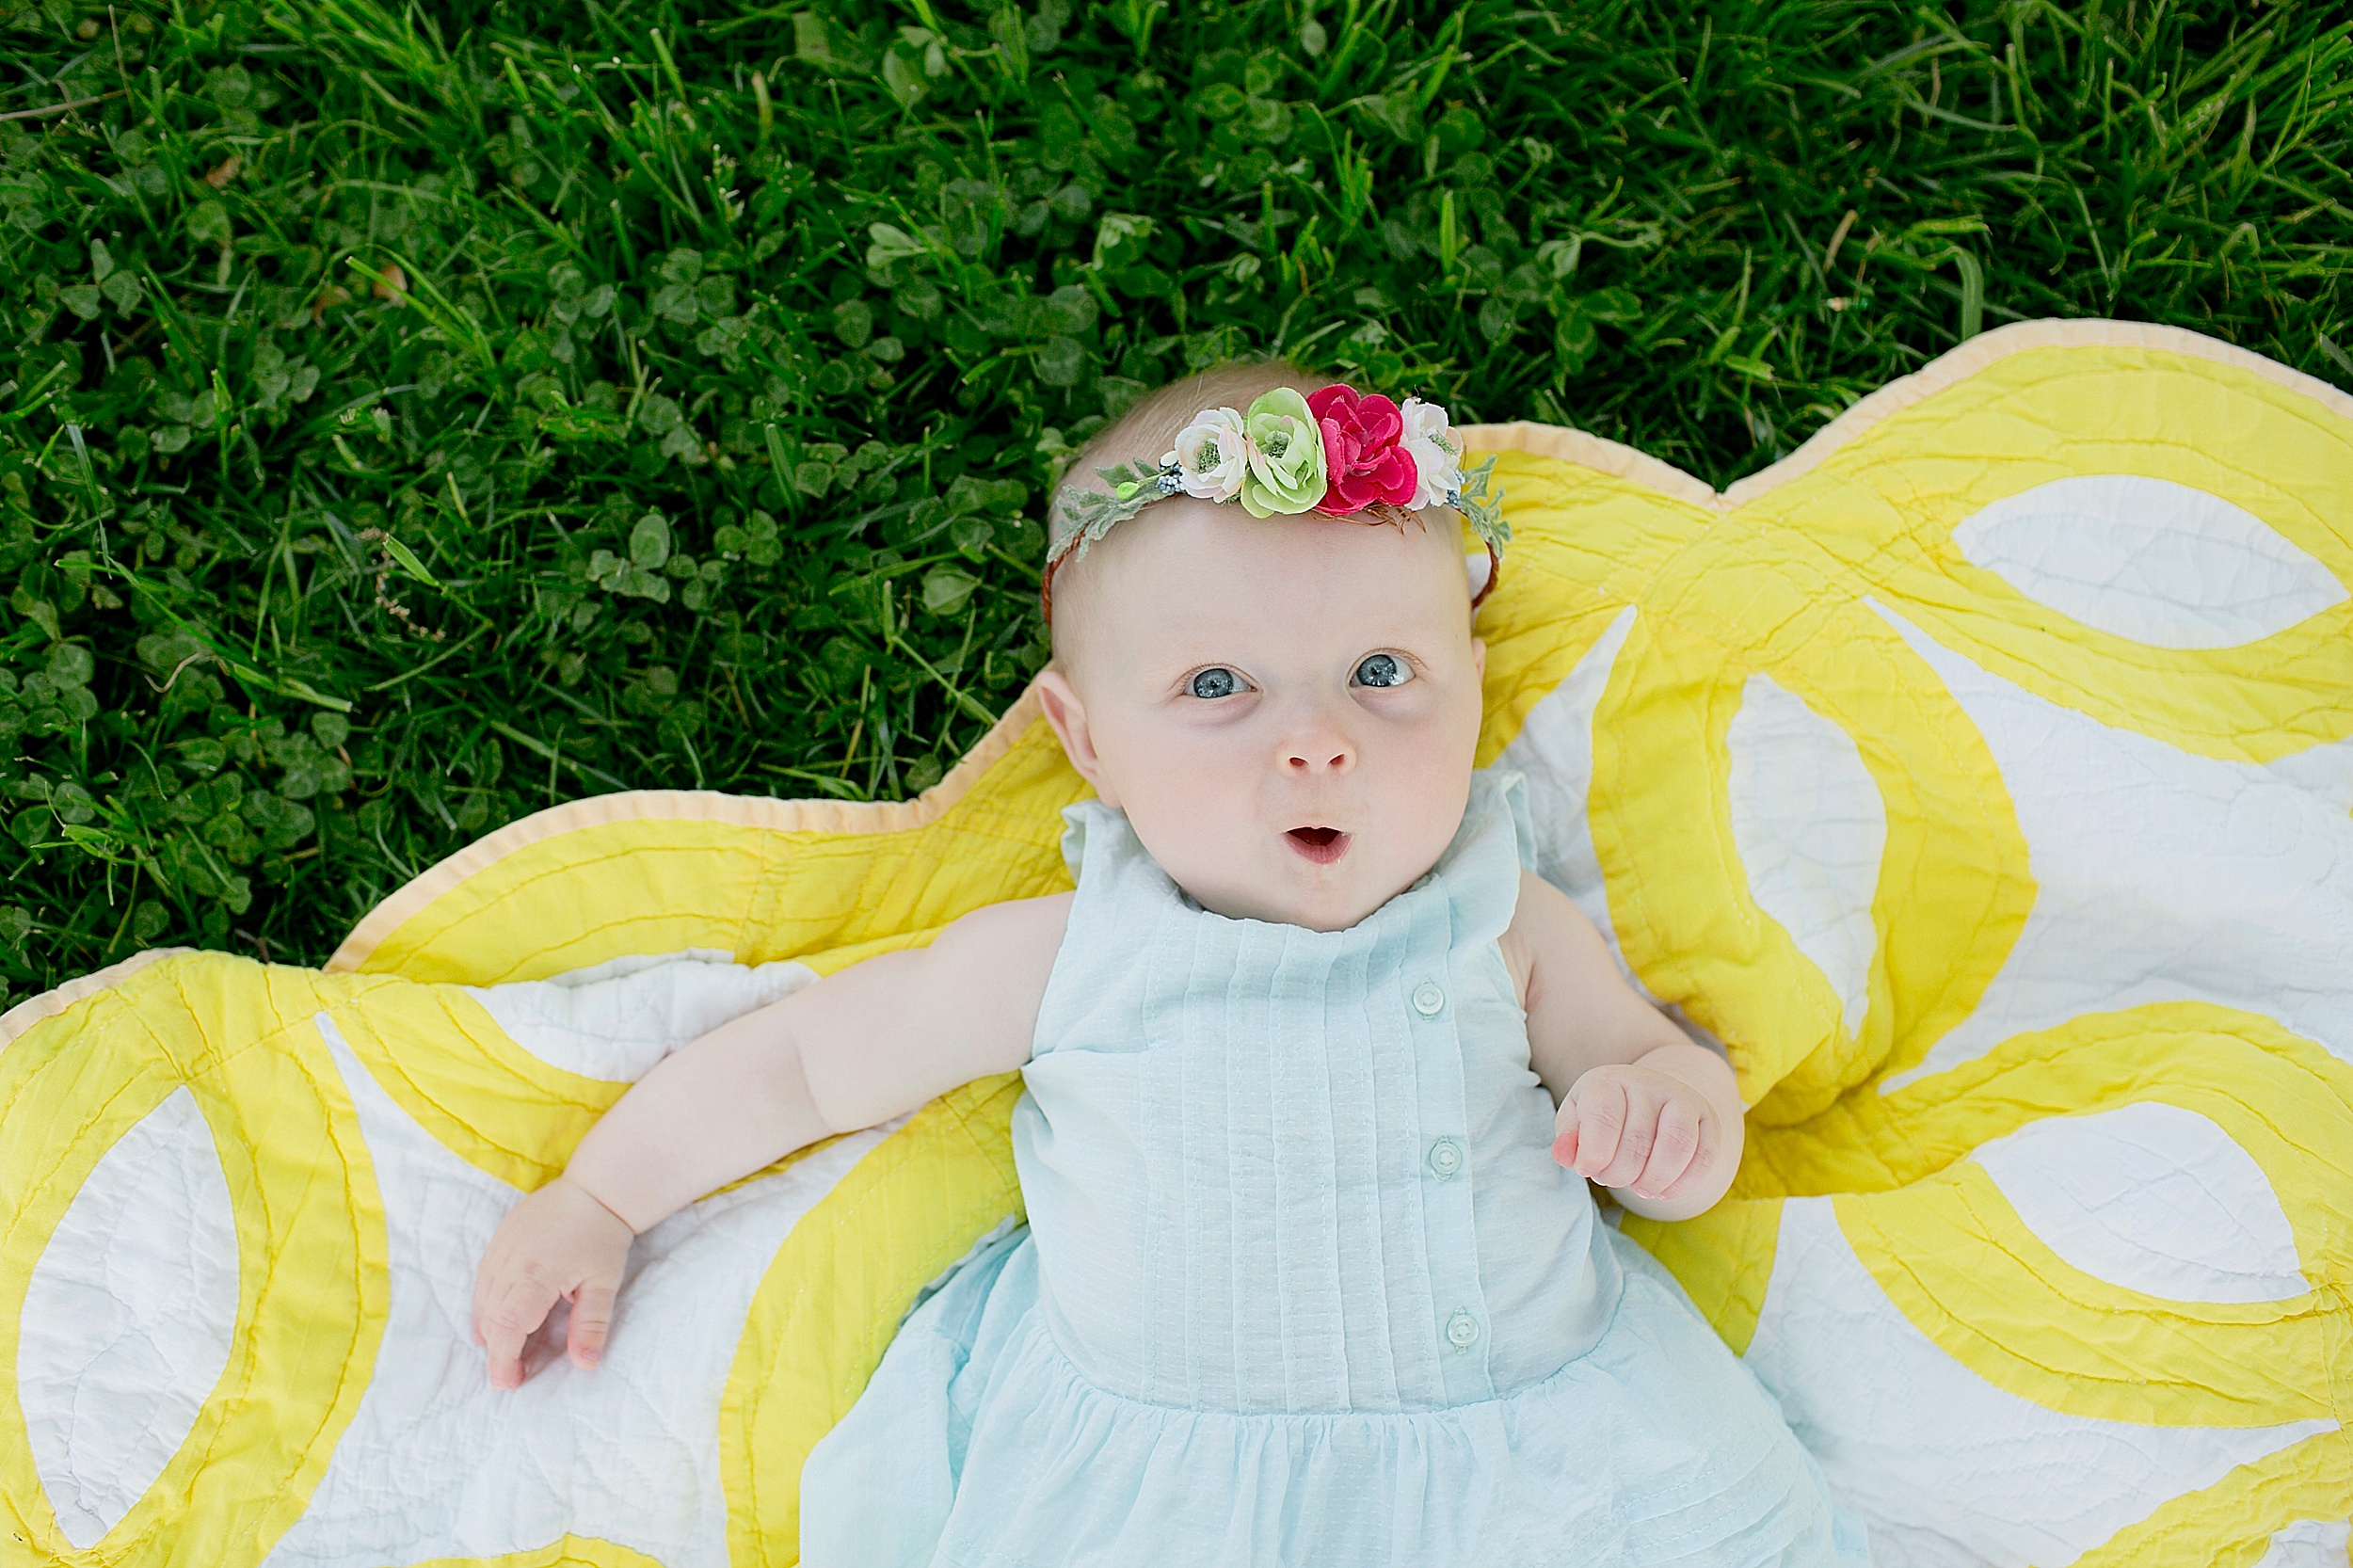 04-baby-on-a-quilt-pakrlands-picture.jpg